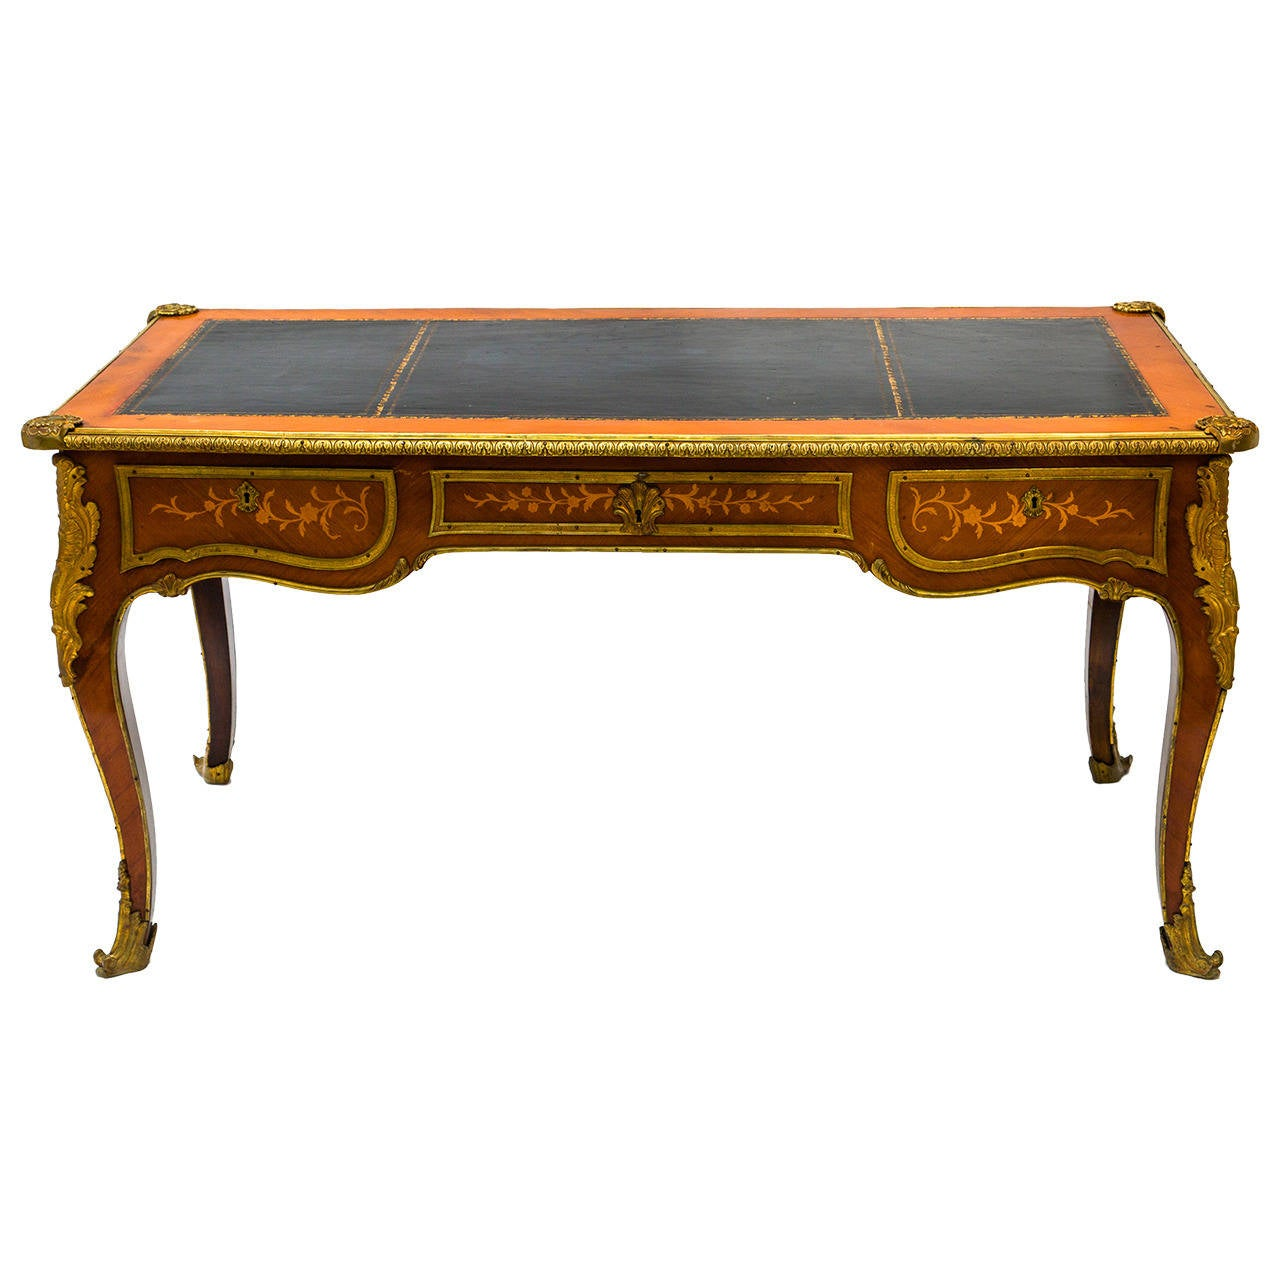 1940s french bureau plat with bronze mounts at 1stdibs for Bureau in french